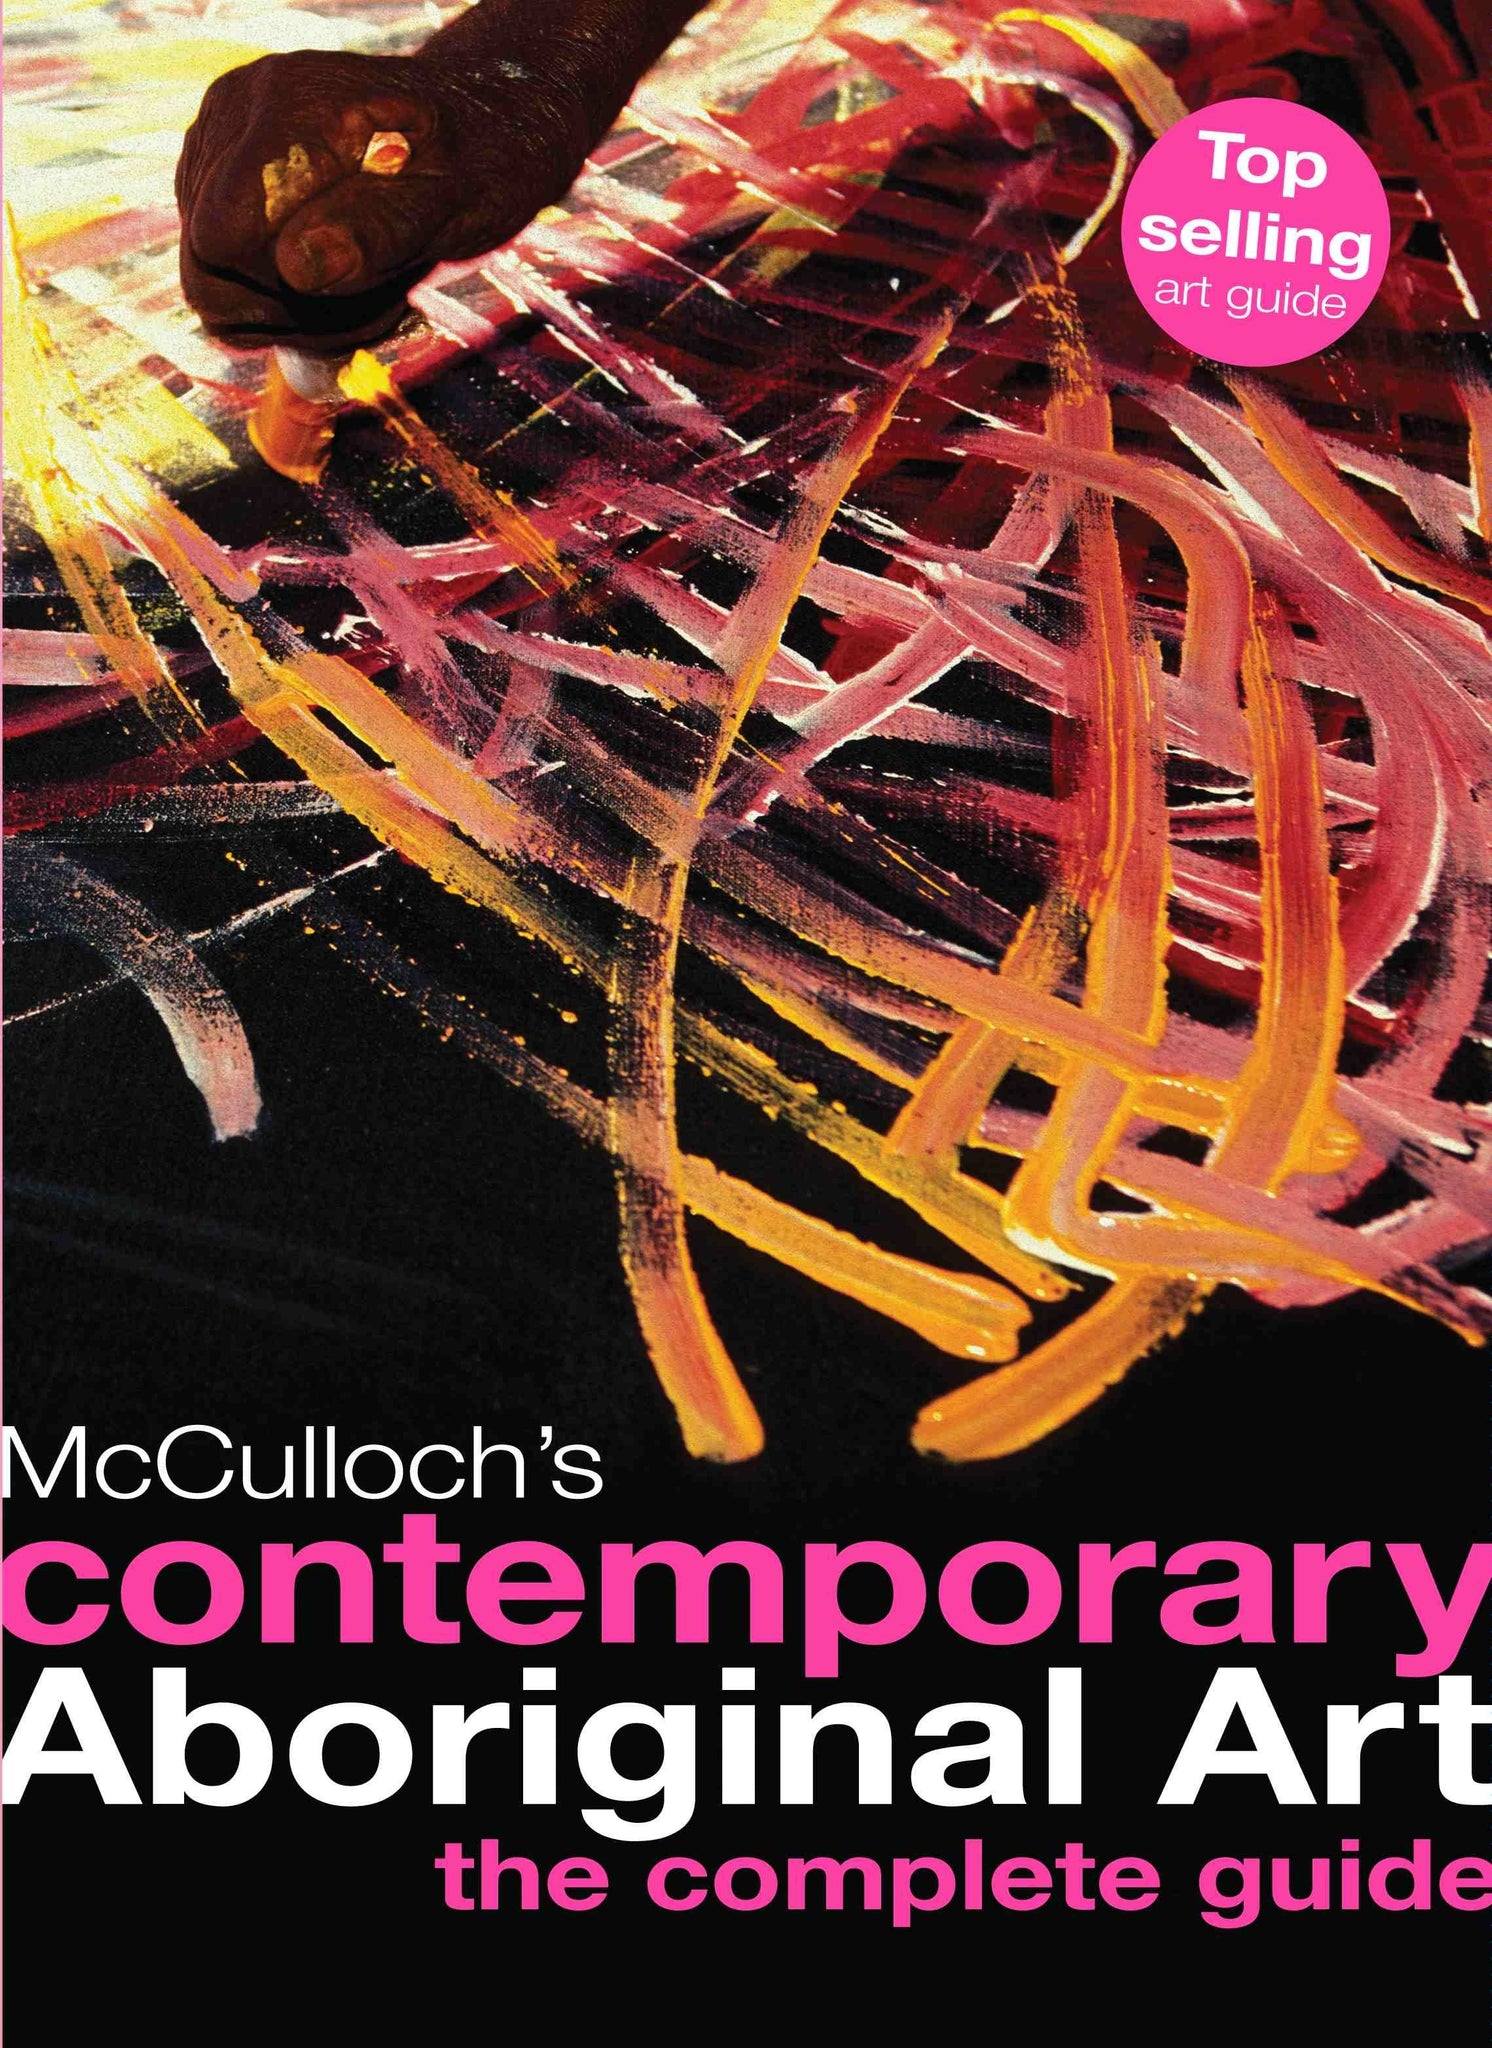 McCulloch's Contemporary Aboriginal Art New Edition